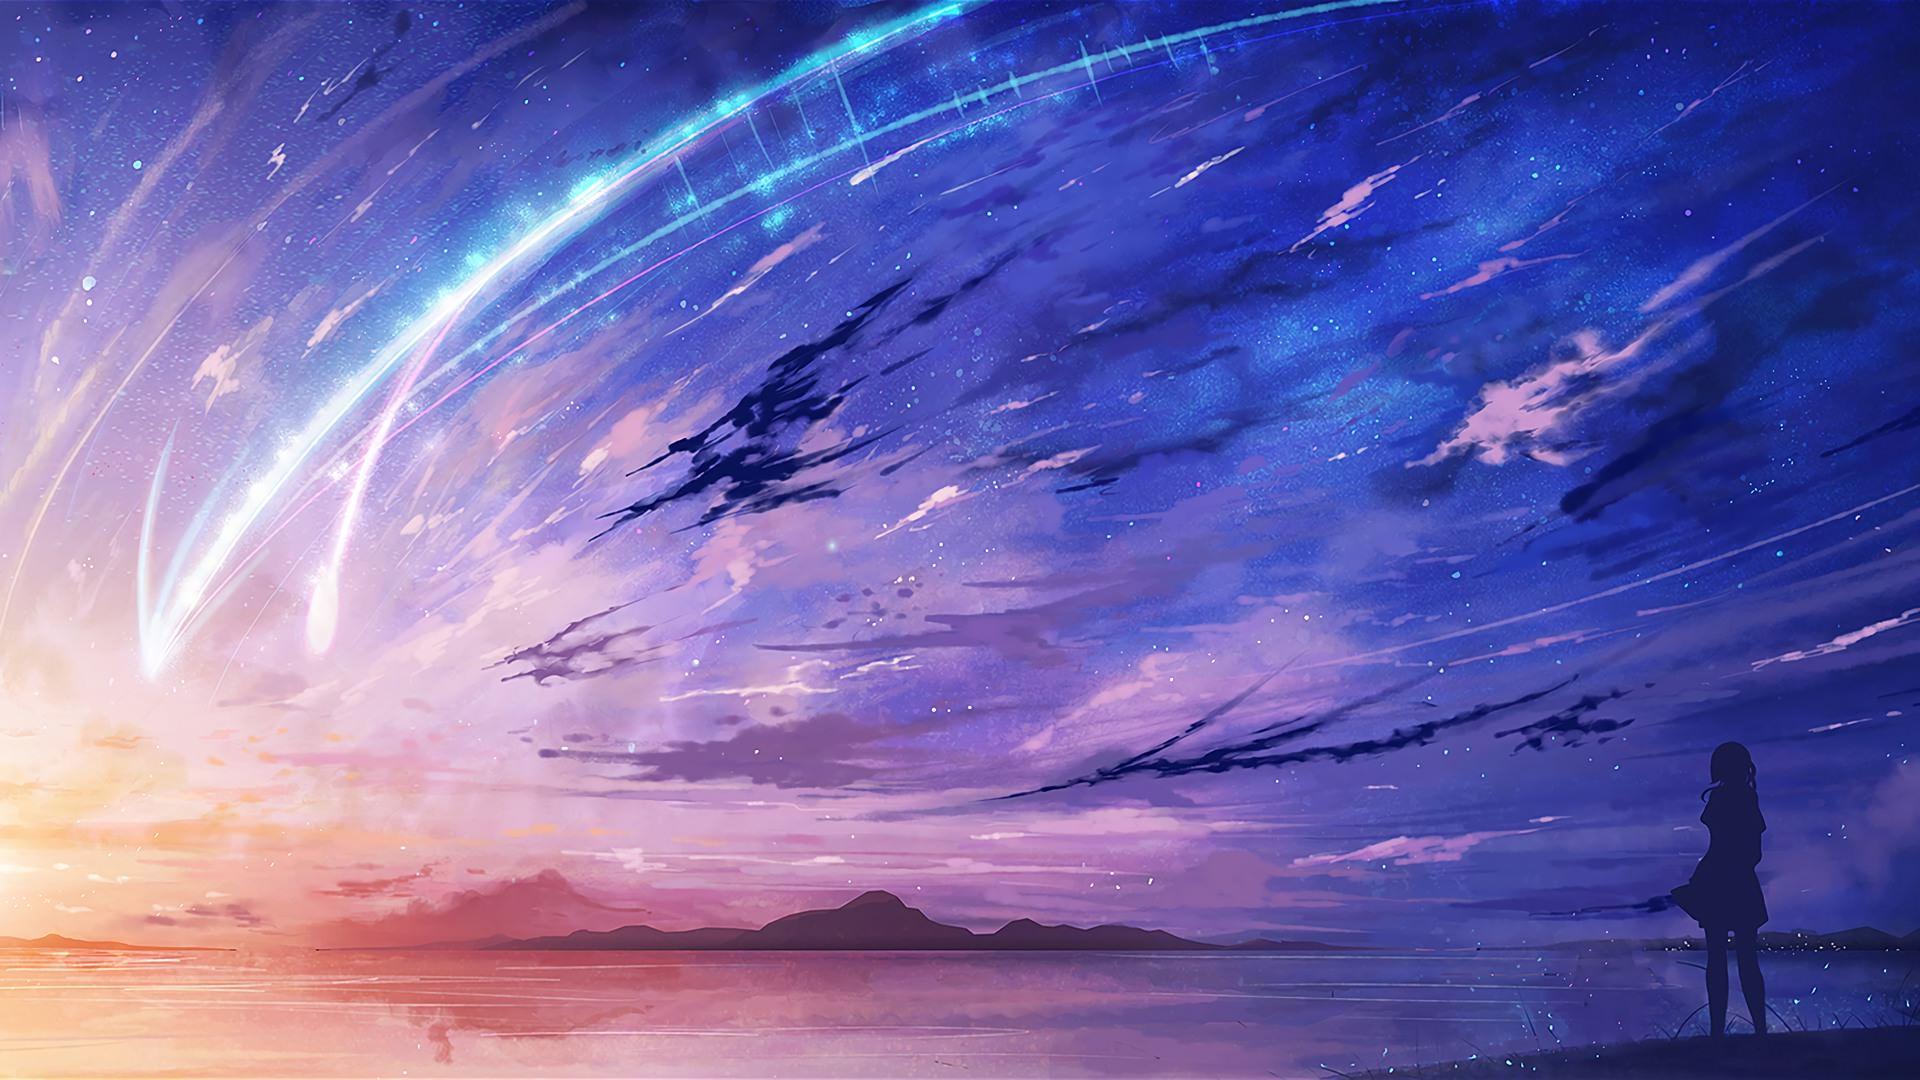 Kimi No Na Wa 4k Posted By Samantha Cunningham